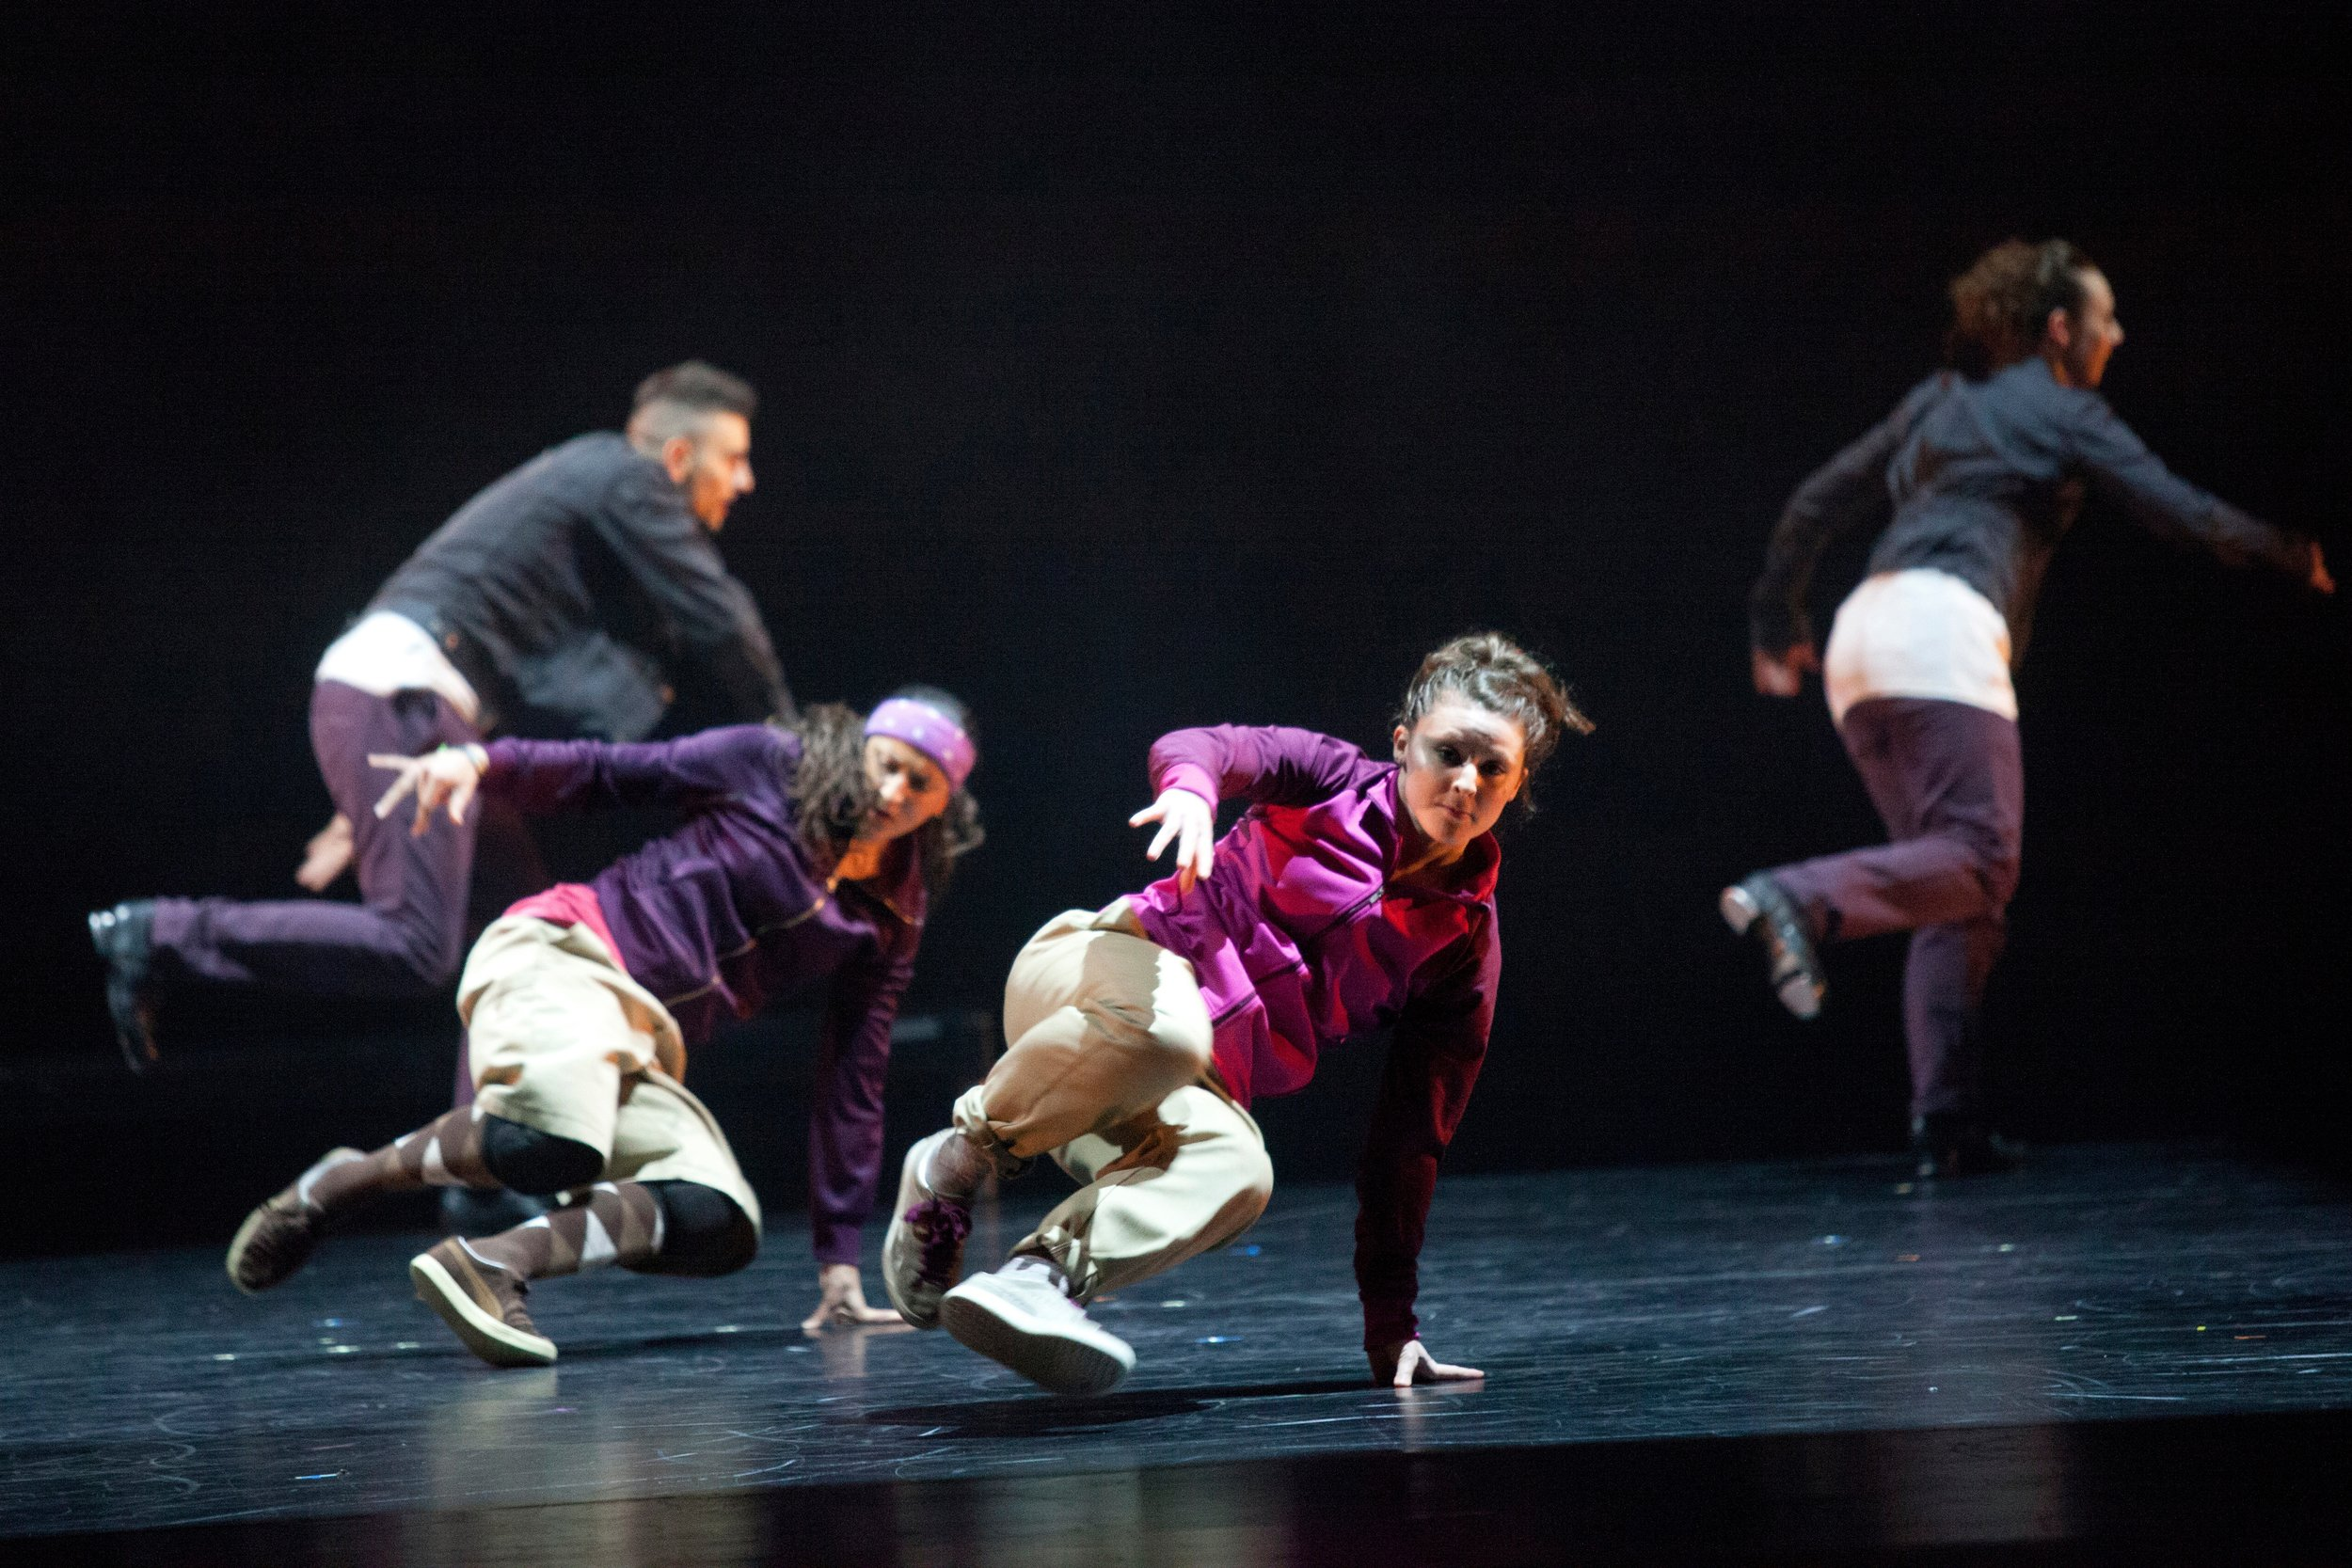 - Grounded Movements' first formal outing in 2013 at Sadlers' Wells Breakin' Convention with a piece titled Alien States. It explored the context of groups and cliques using the contrast of forms between Tap, Breaking and Original Jazz as the focus of the physical language